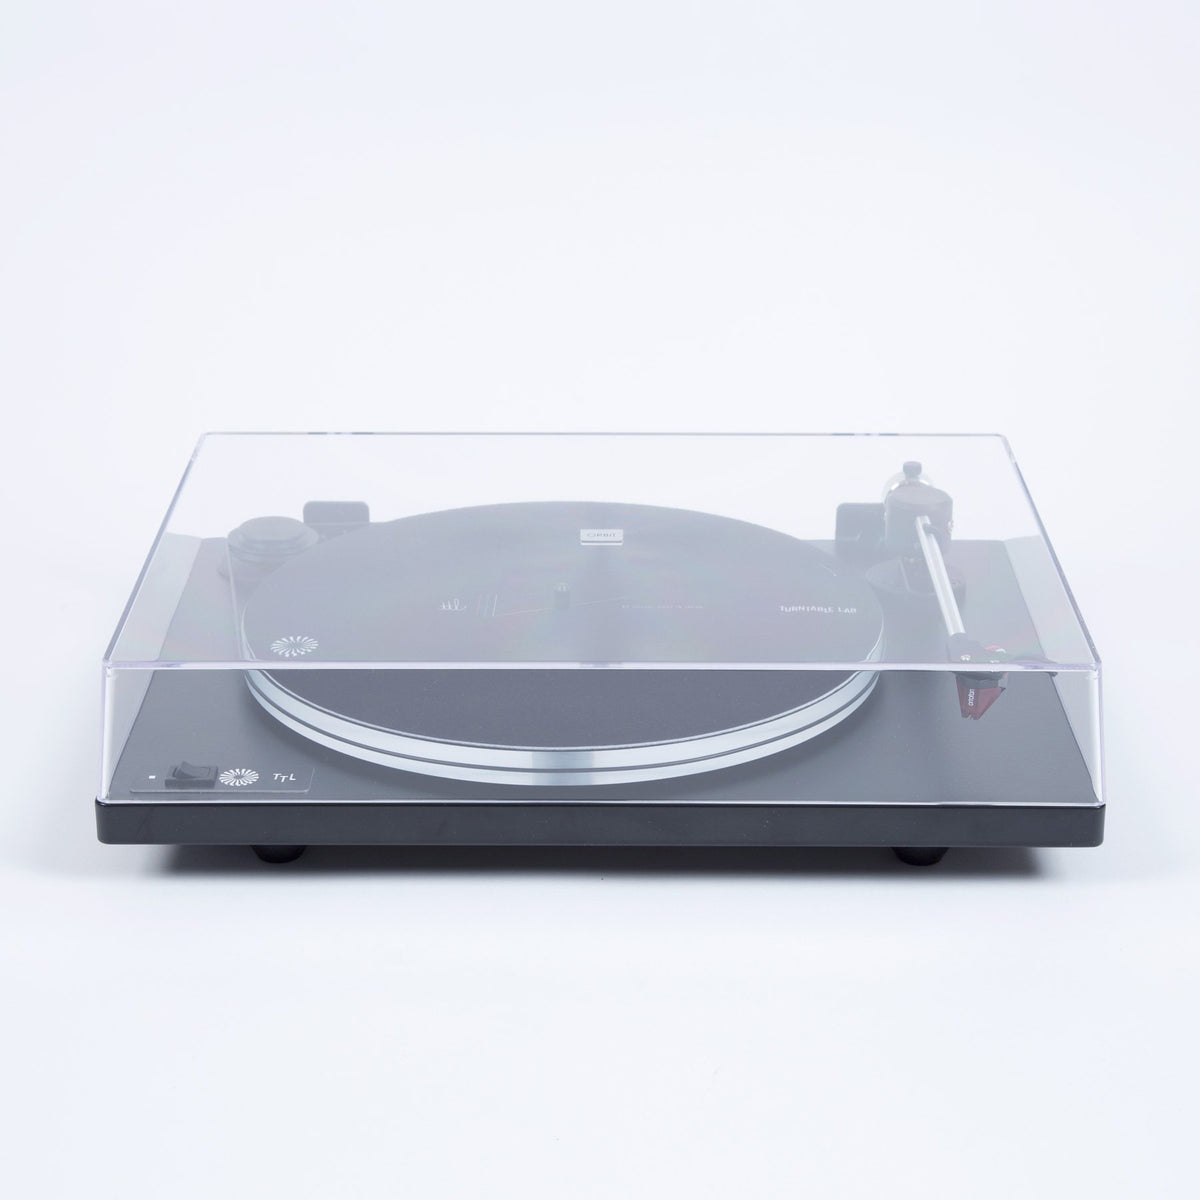 U-Turn Audio: Orbit Turntable w/ Built-In Preamp - Turntable Lab Edition